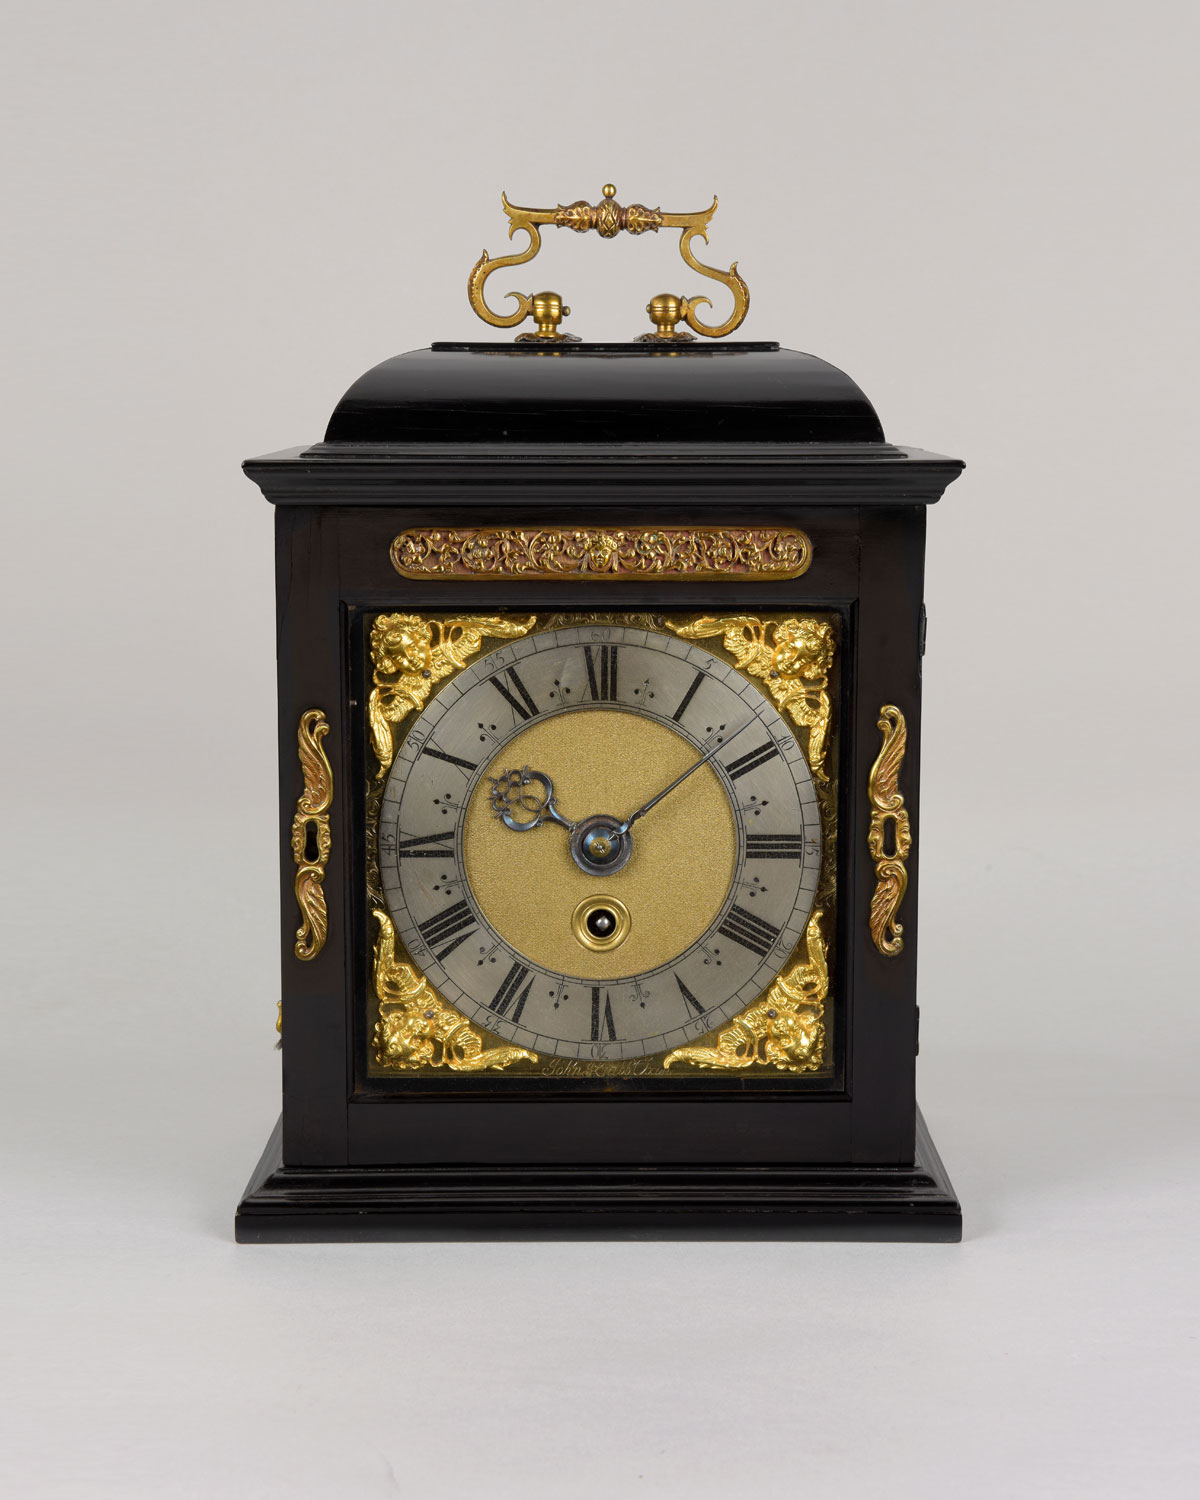 JOHN KNIBB, OXON.  A fine small spring driven table clock by this eminent maker.